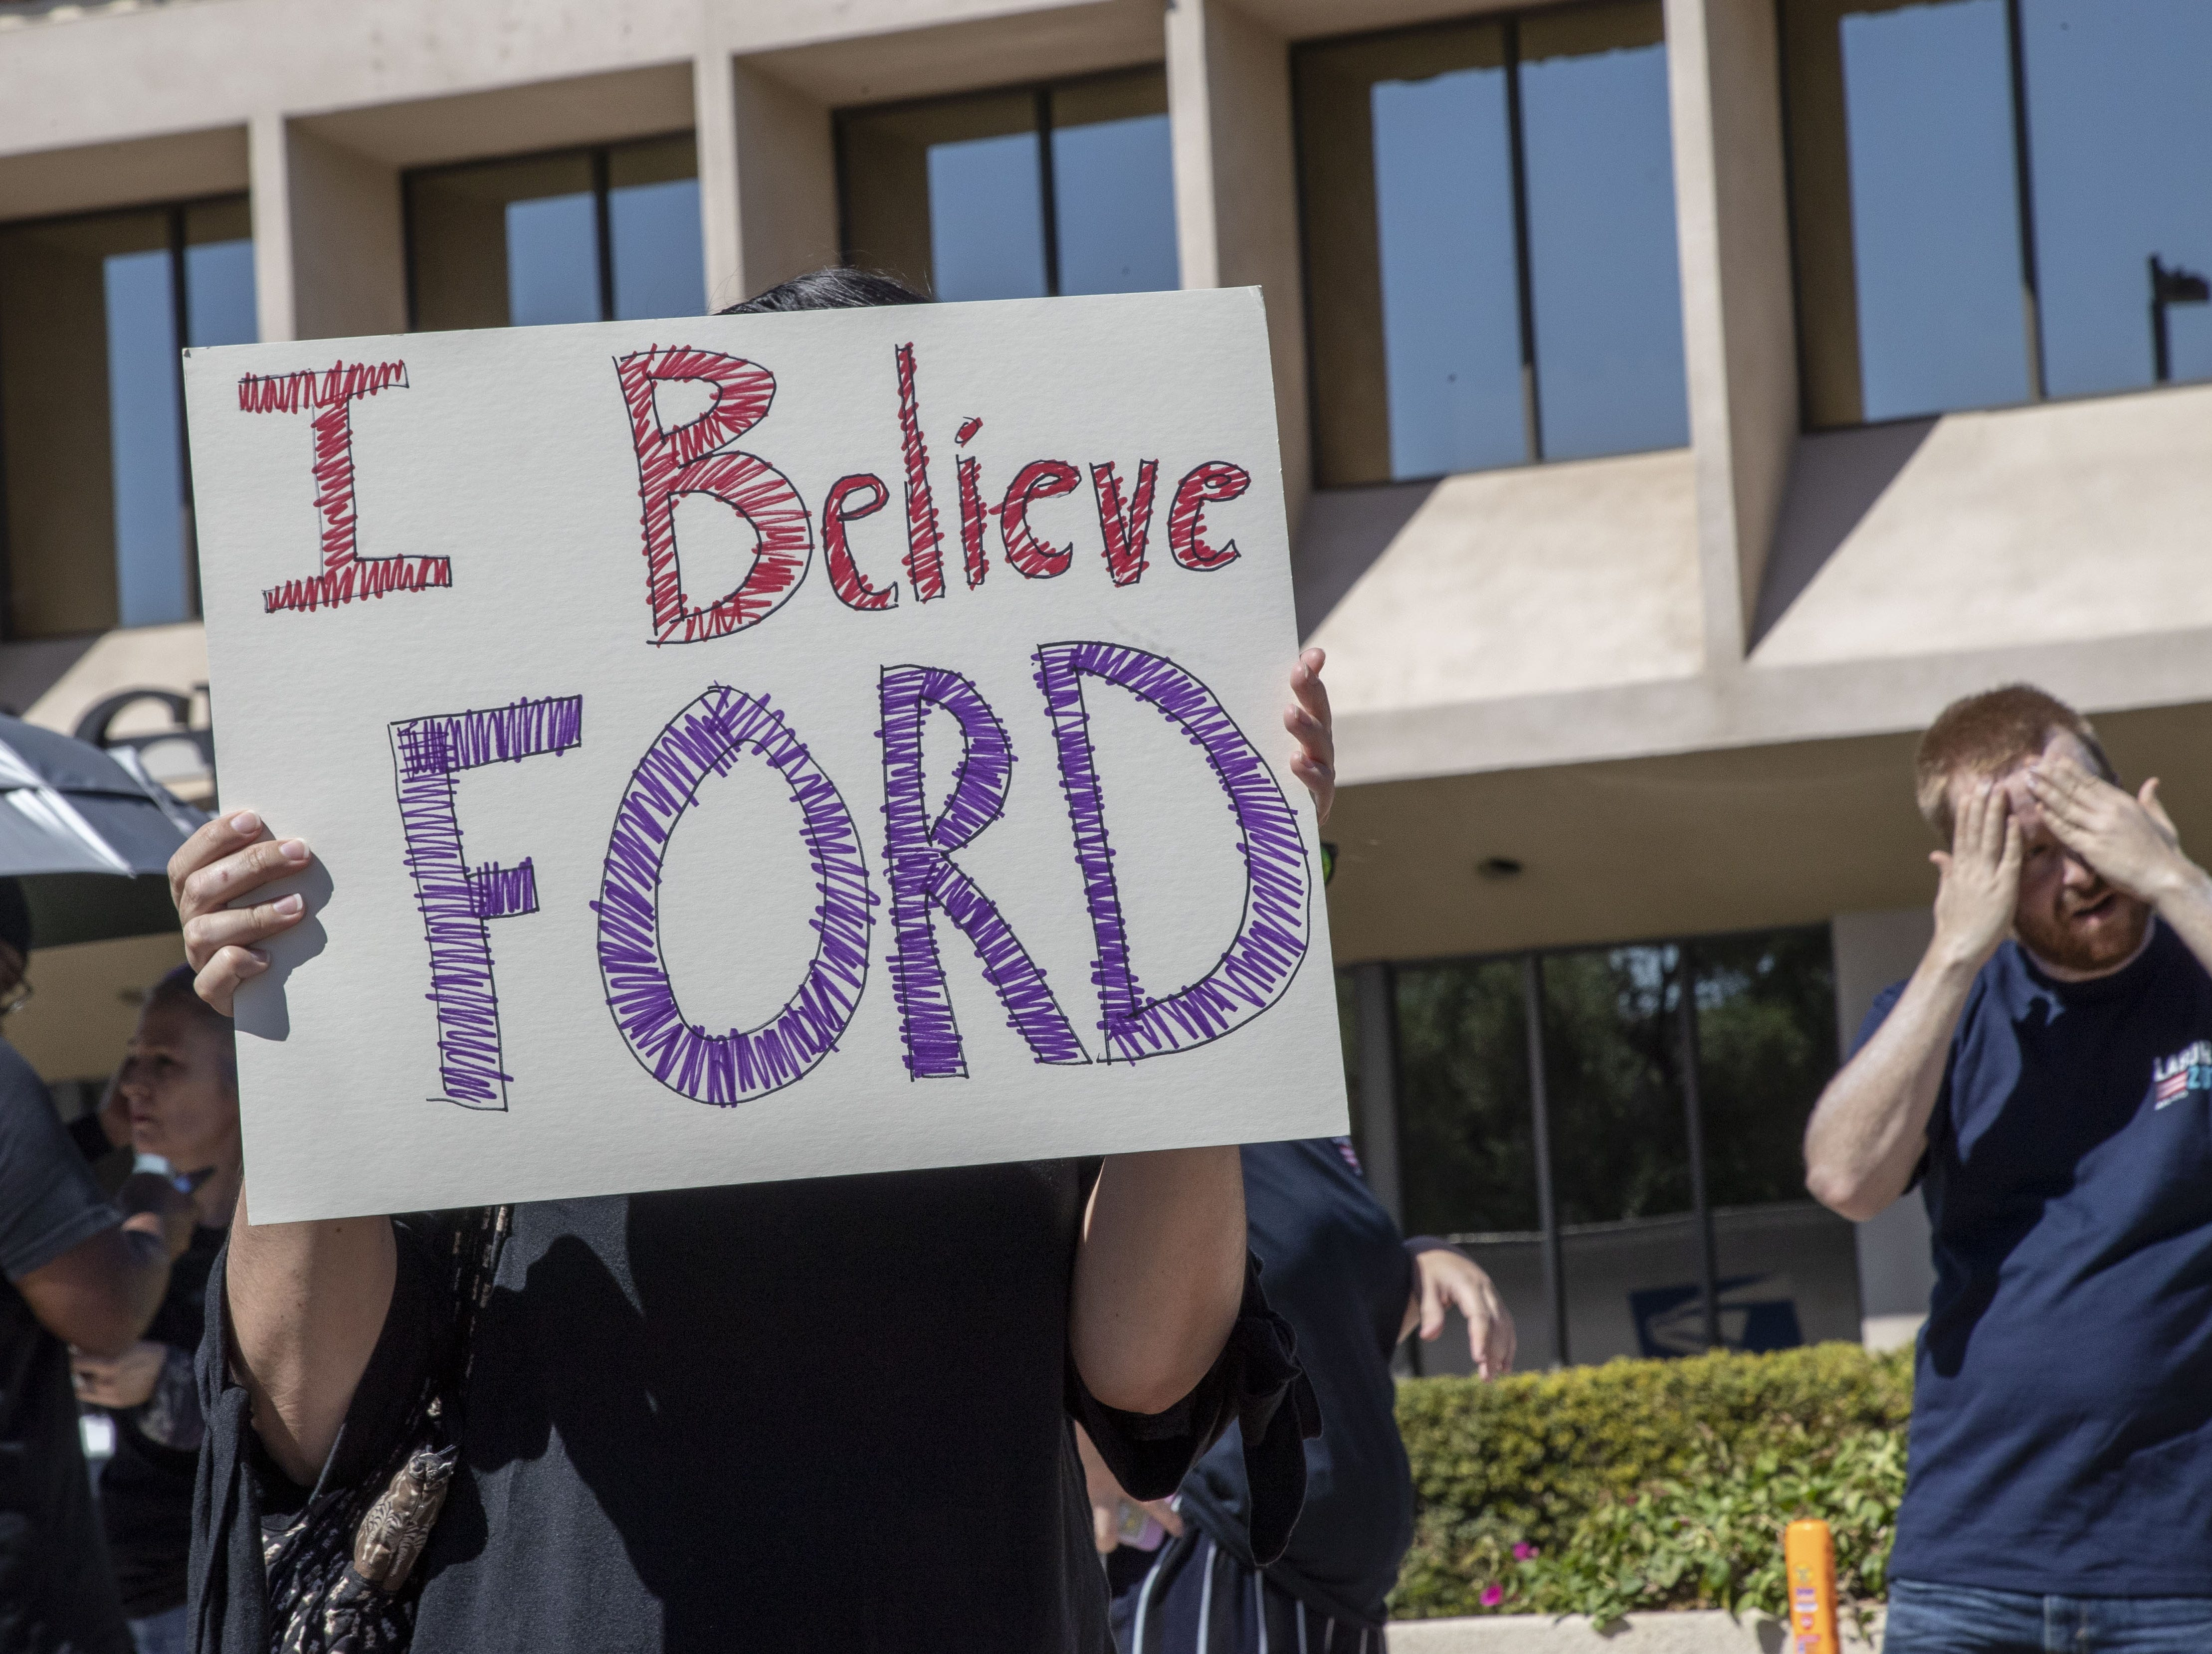 People protest Sept. 28, 2018, outside Jeff Flake's Phoenix office after he said wouldn't support a U.S. Senate floor vote for Judge Brett Kavanaugh's Supreme Court confirmation without first allowing an FBI investigation into sexual harassment accusations against Kavanaugh.